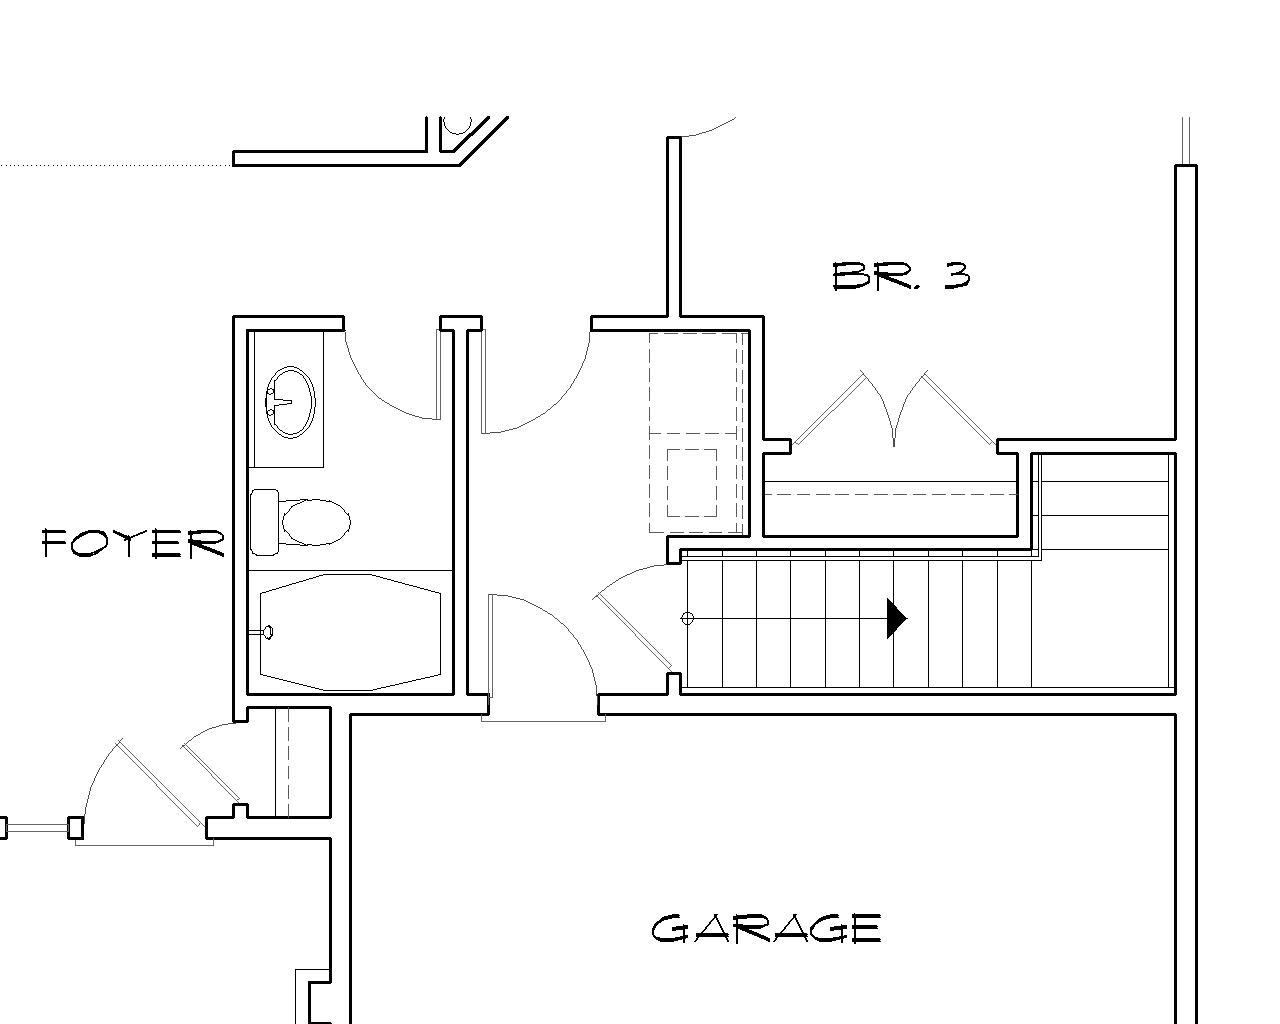 Stair Location for Basement Version image of Granville House Plan